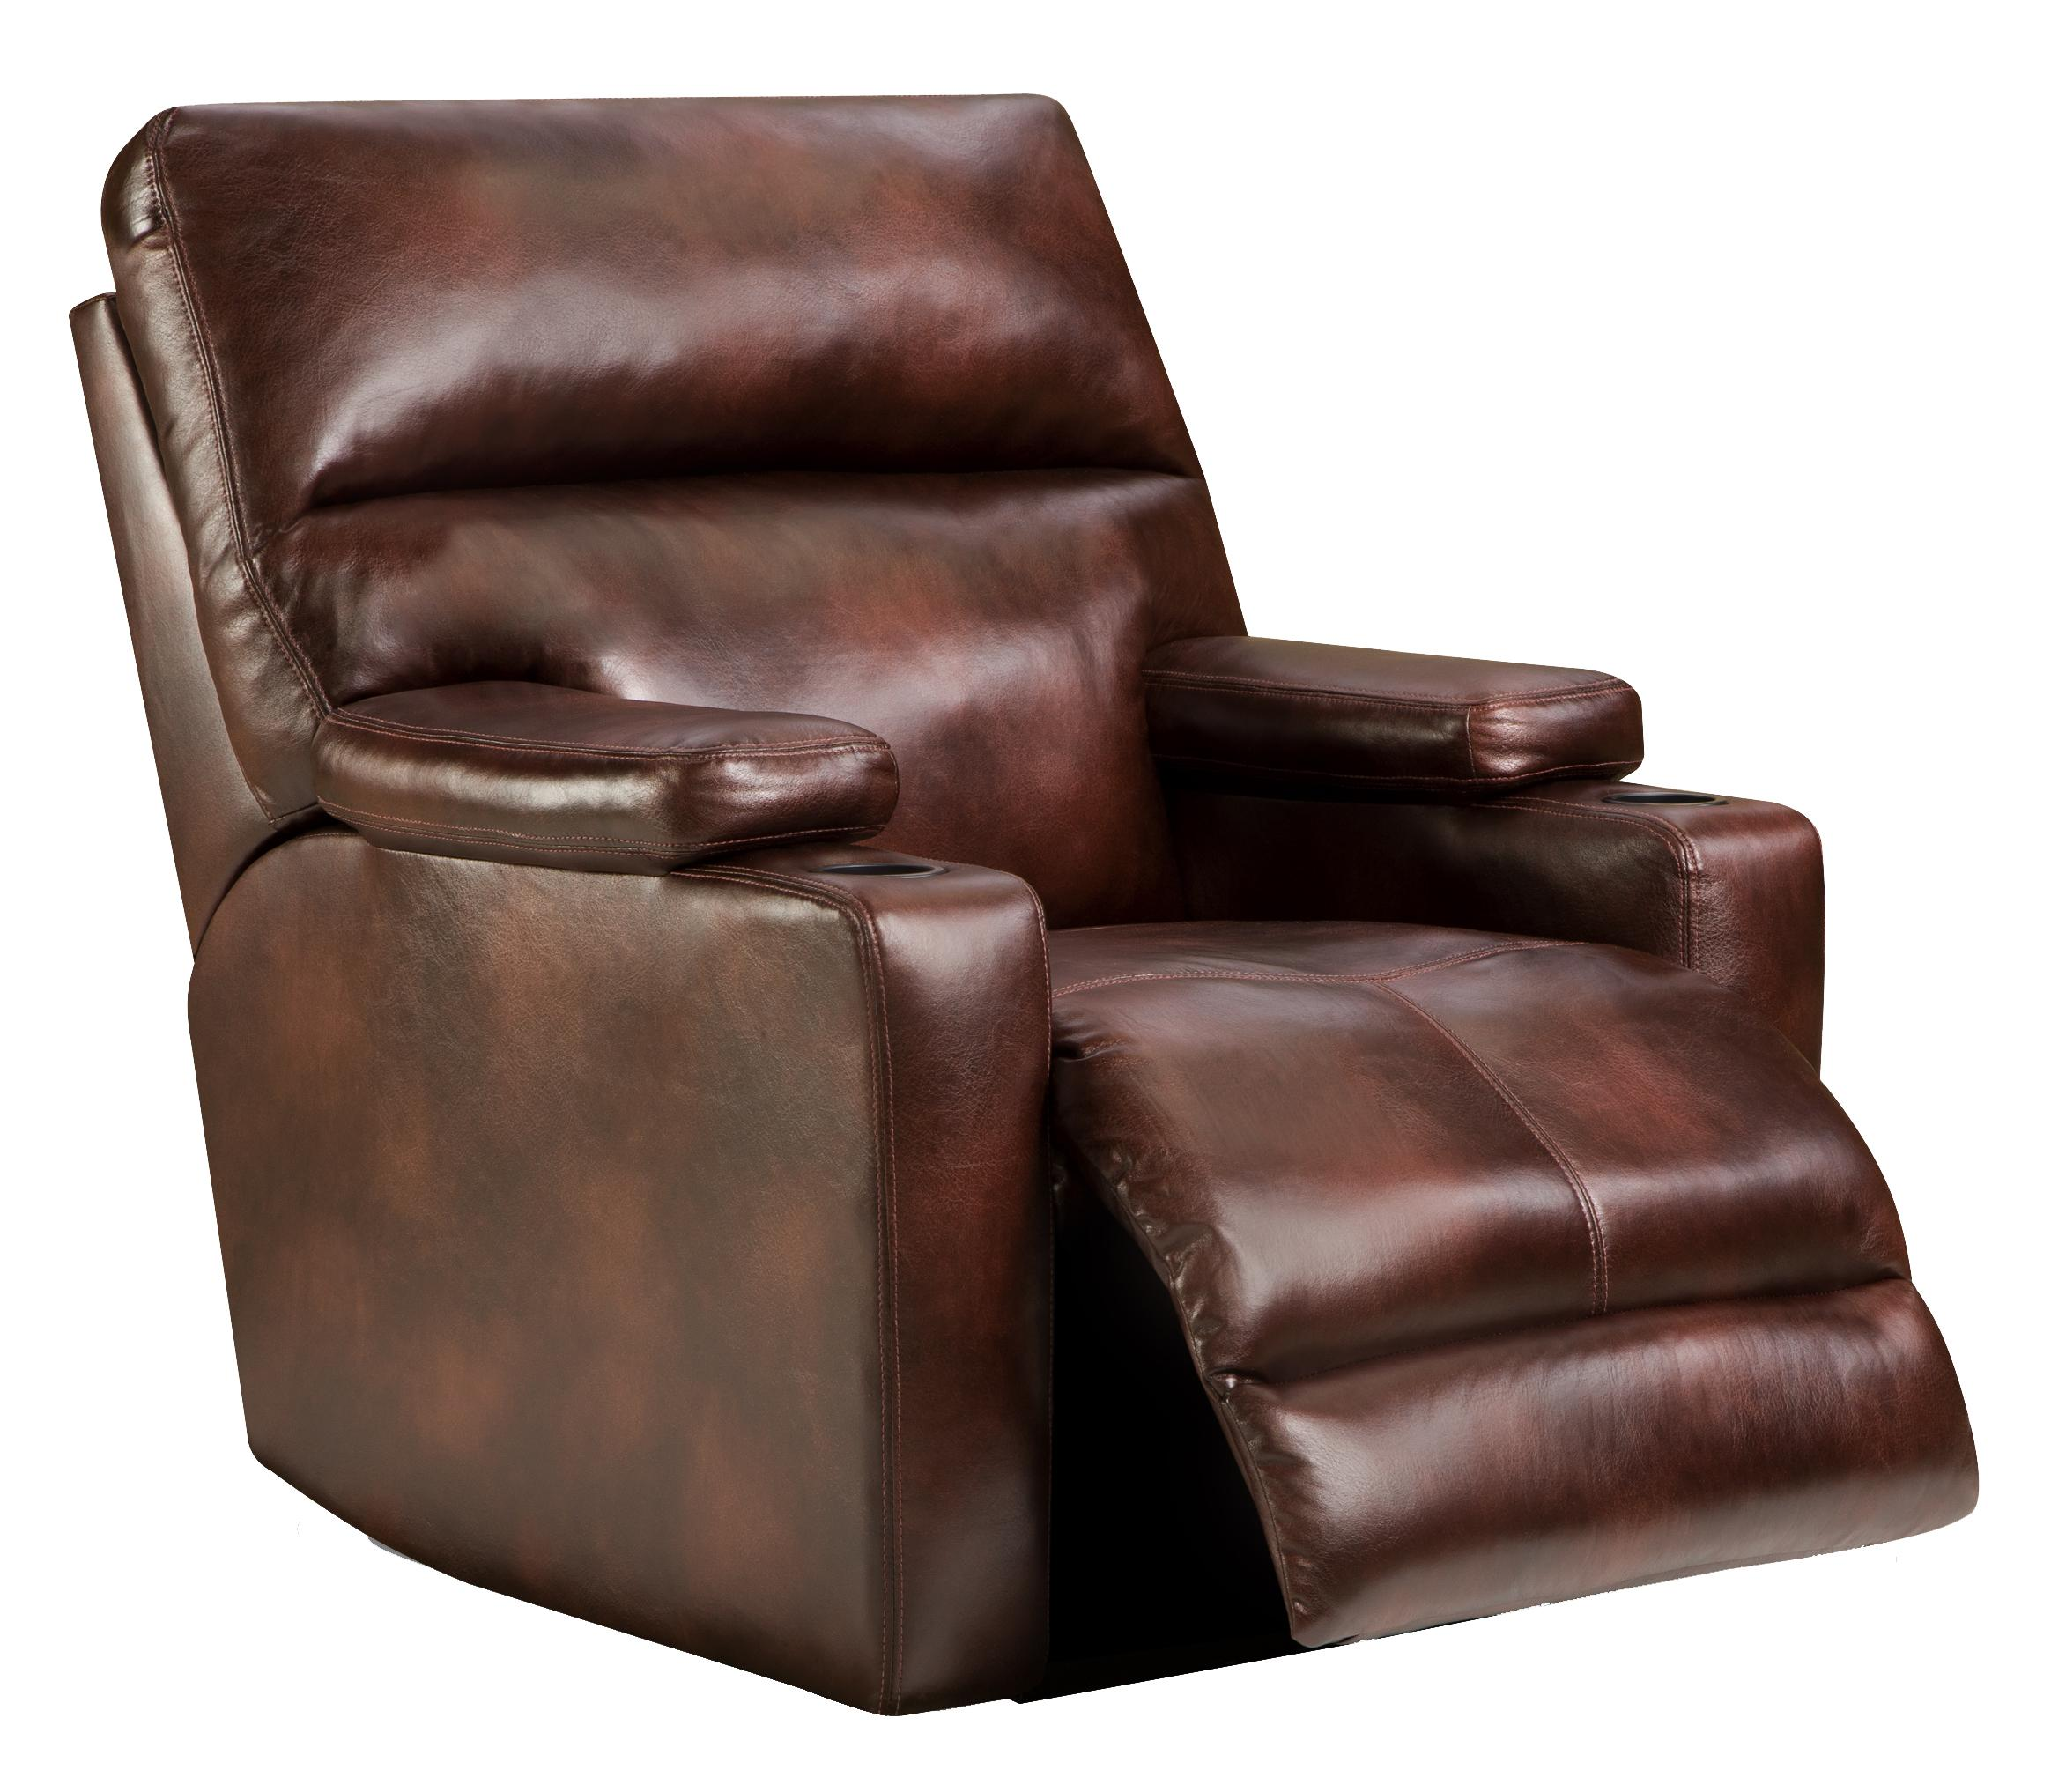 lay flat recliner chairs chair covers for recliners canada with theater seating option by southern